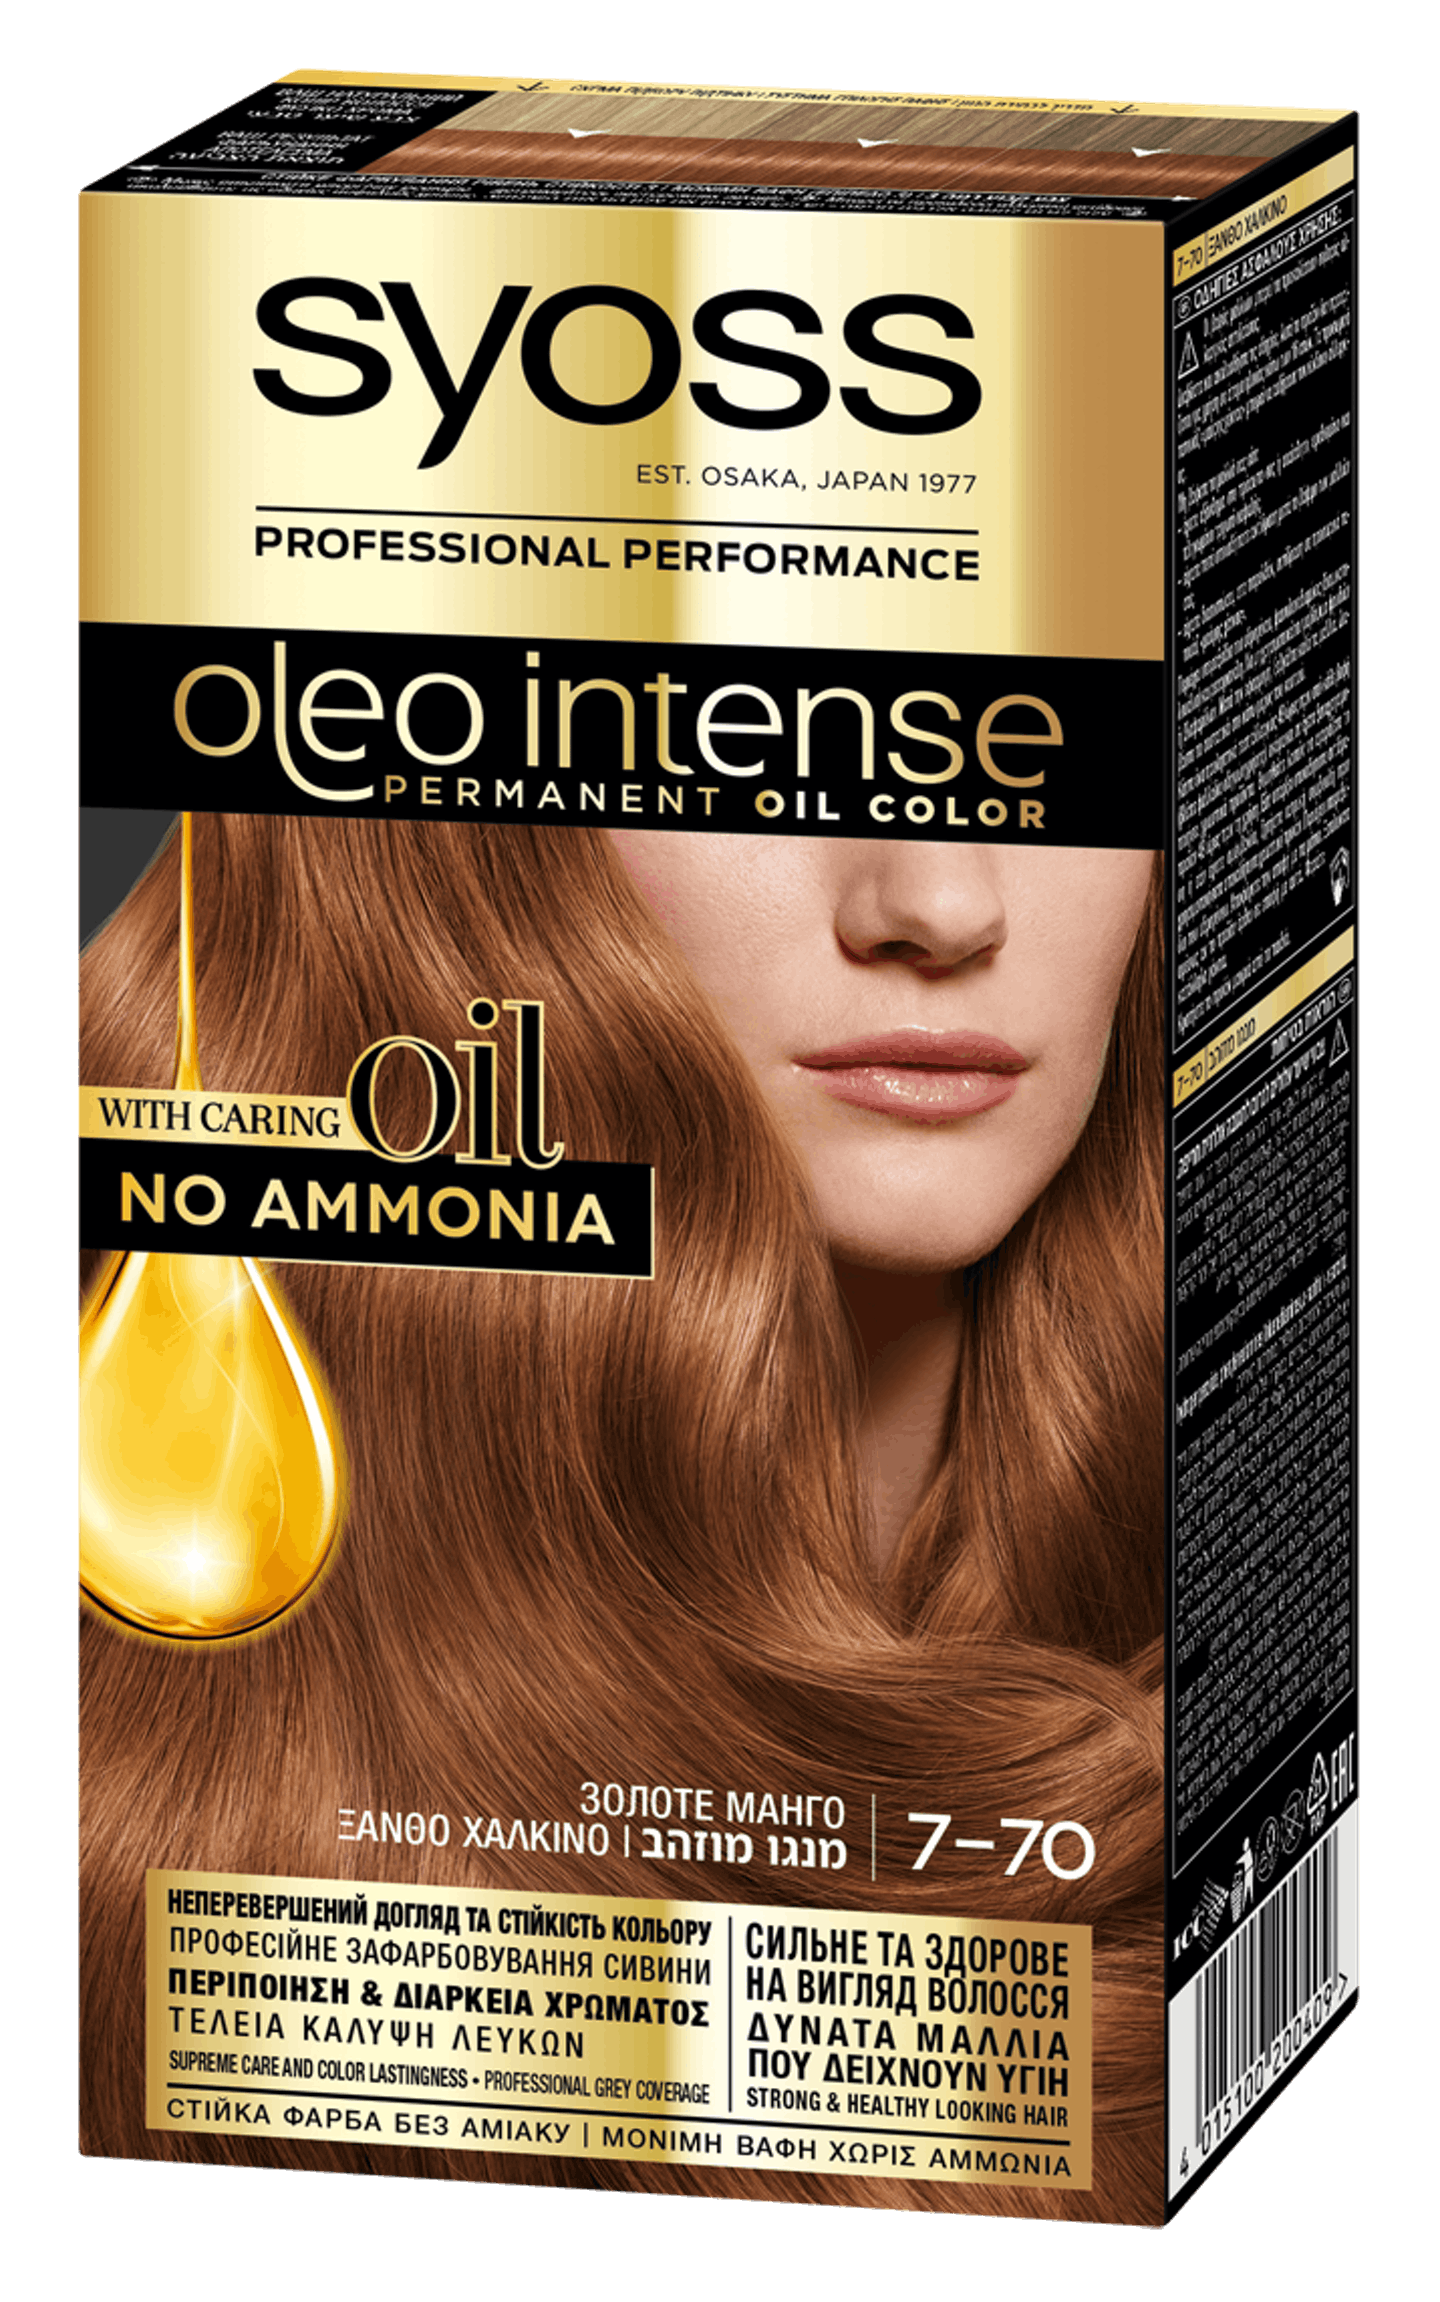 Syoss Oleo Intense Золоте Манго 7-70